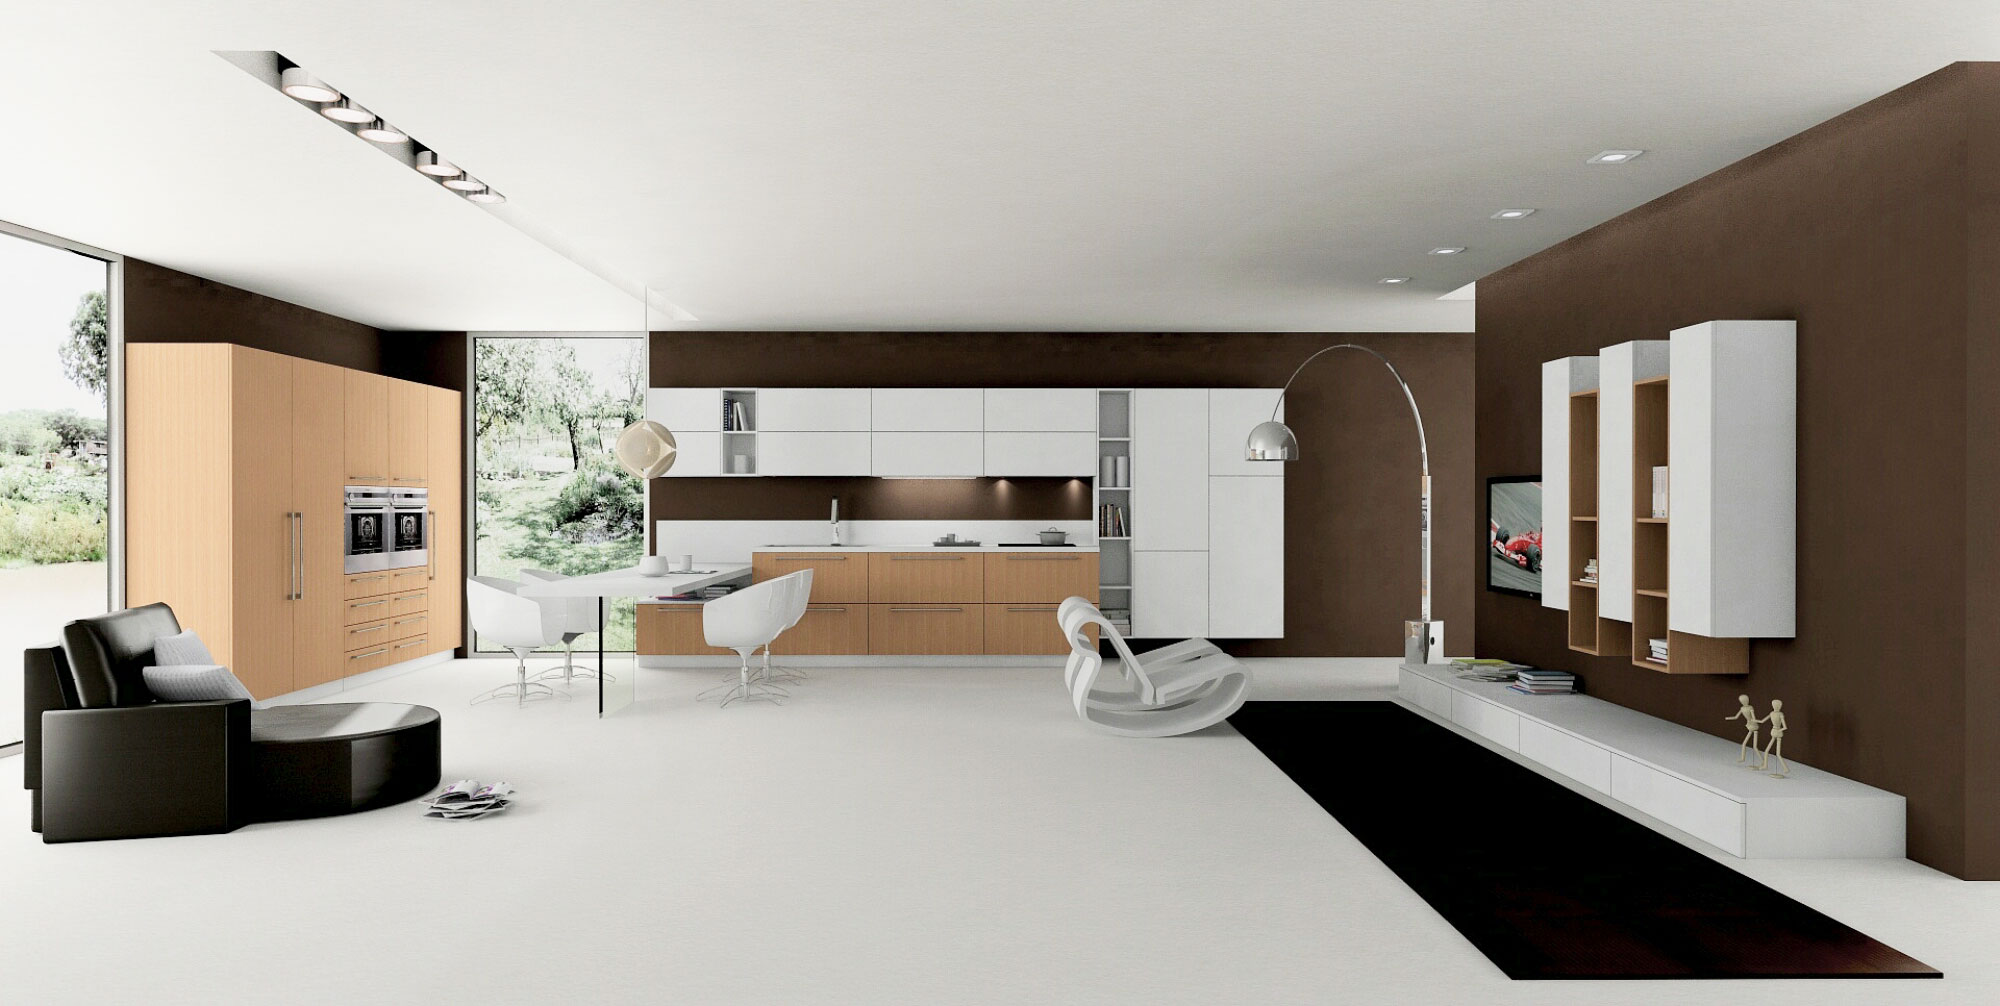 F19001 | Roble natural ref31 y white ref30